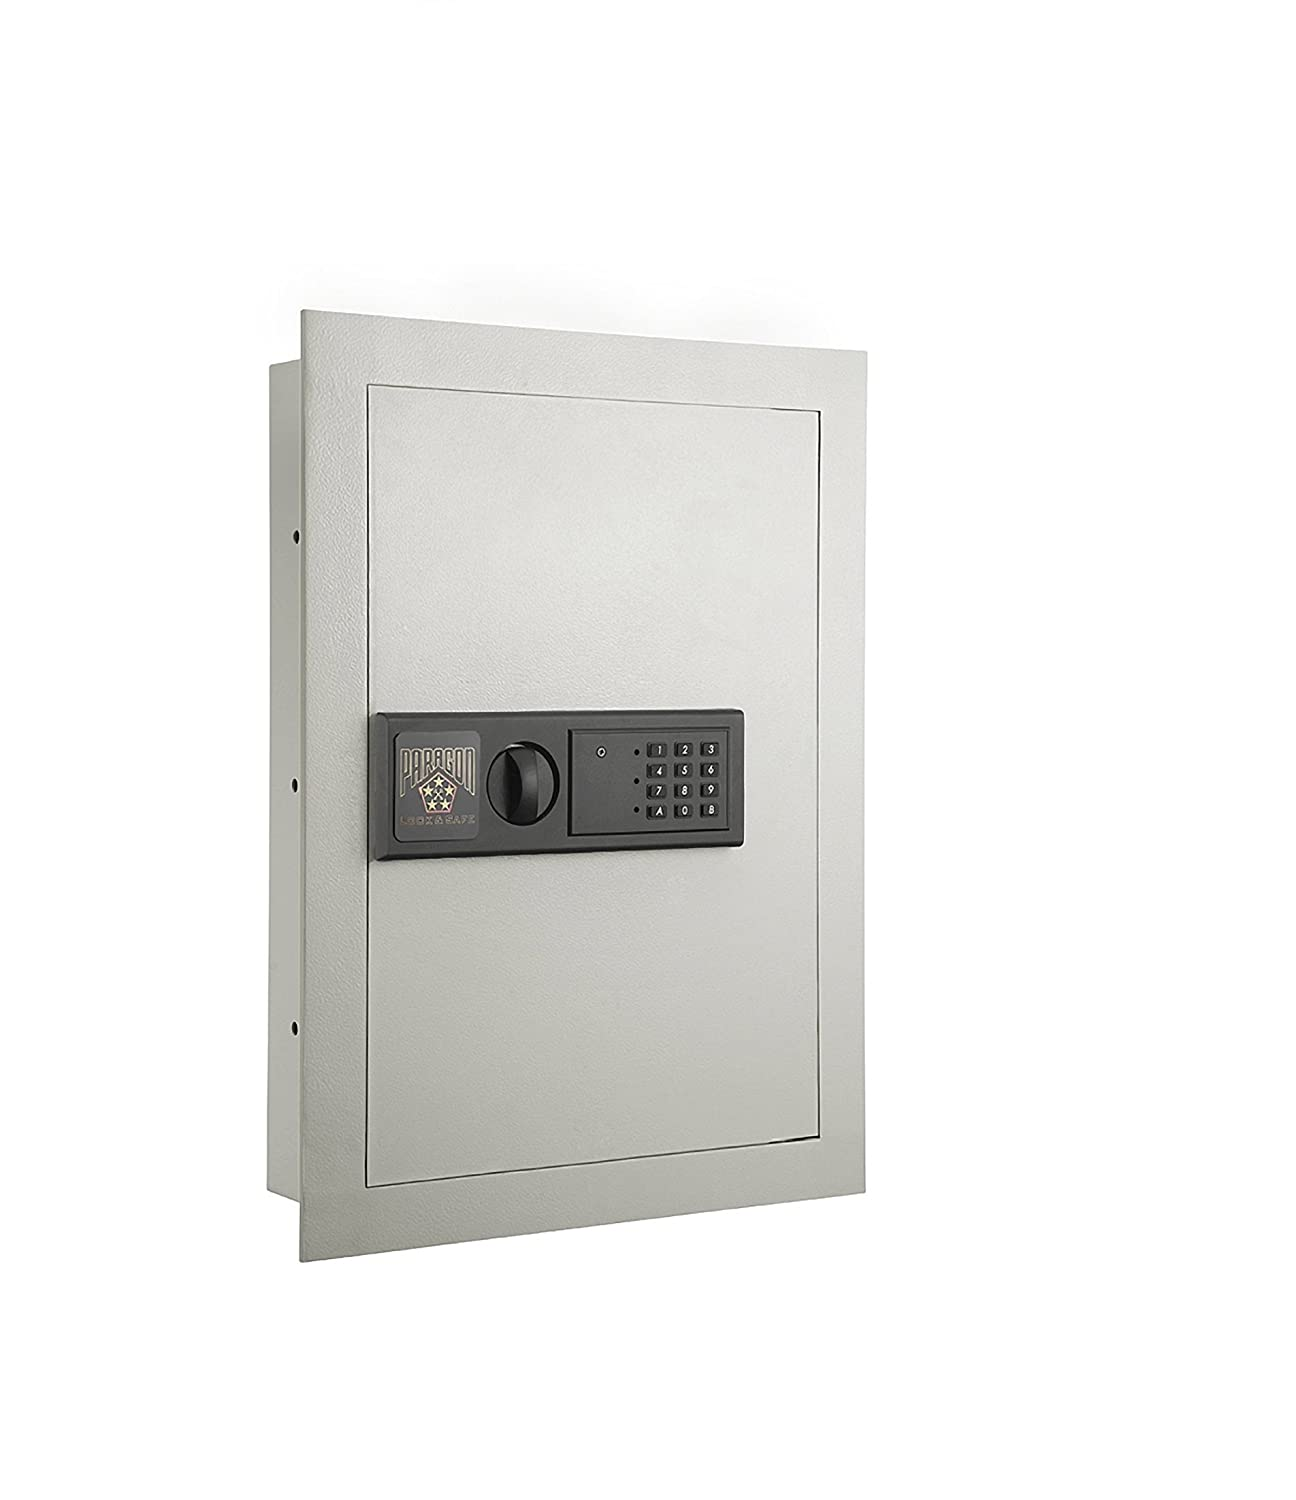 Stack-On IWC-55 Full-Length In-Wall Cabinet (Beige): Amazon.ca ...